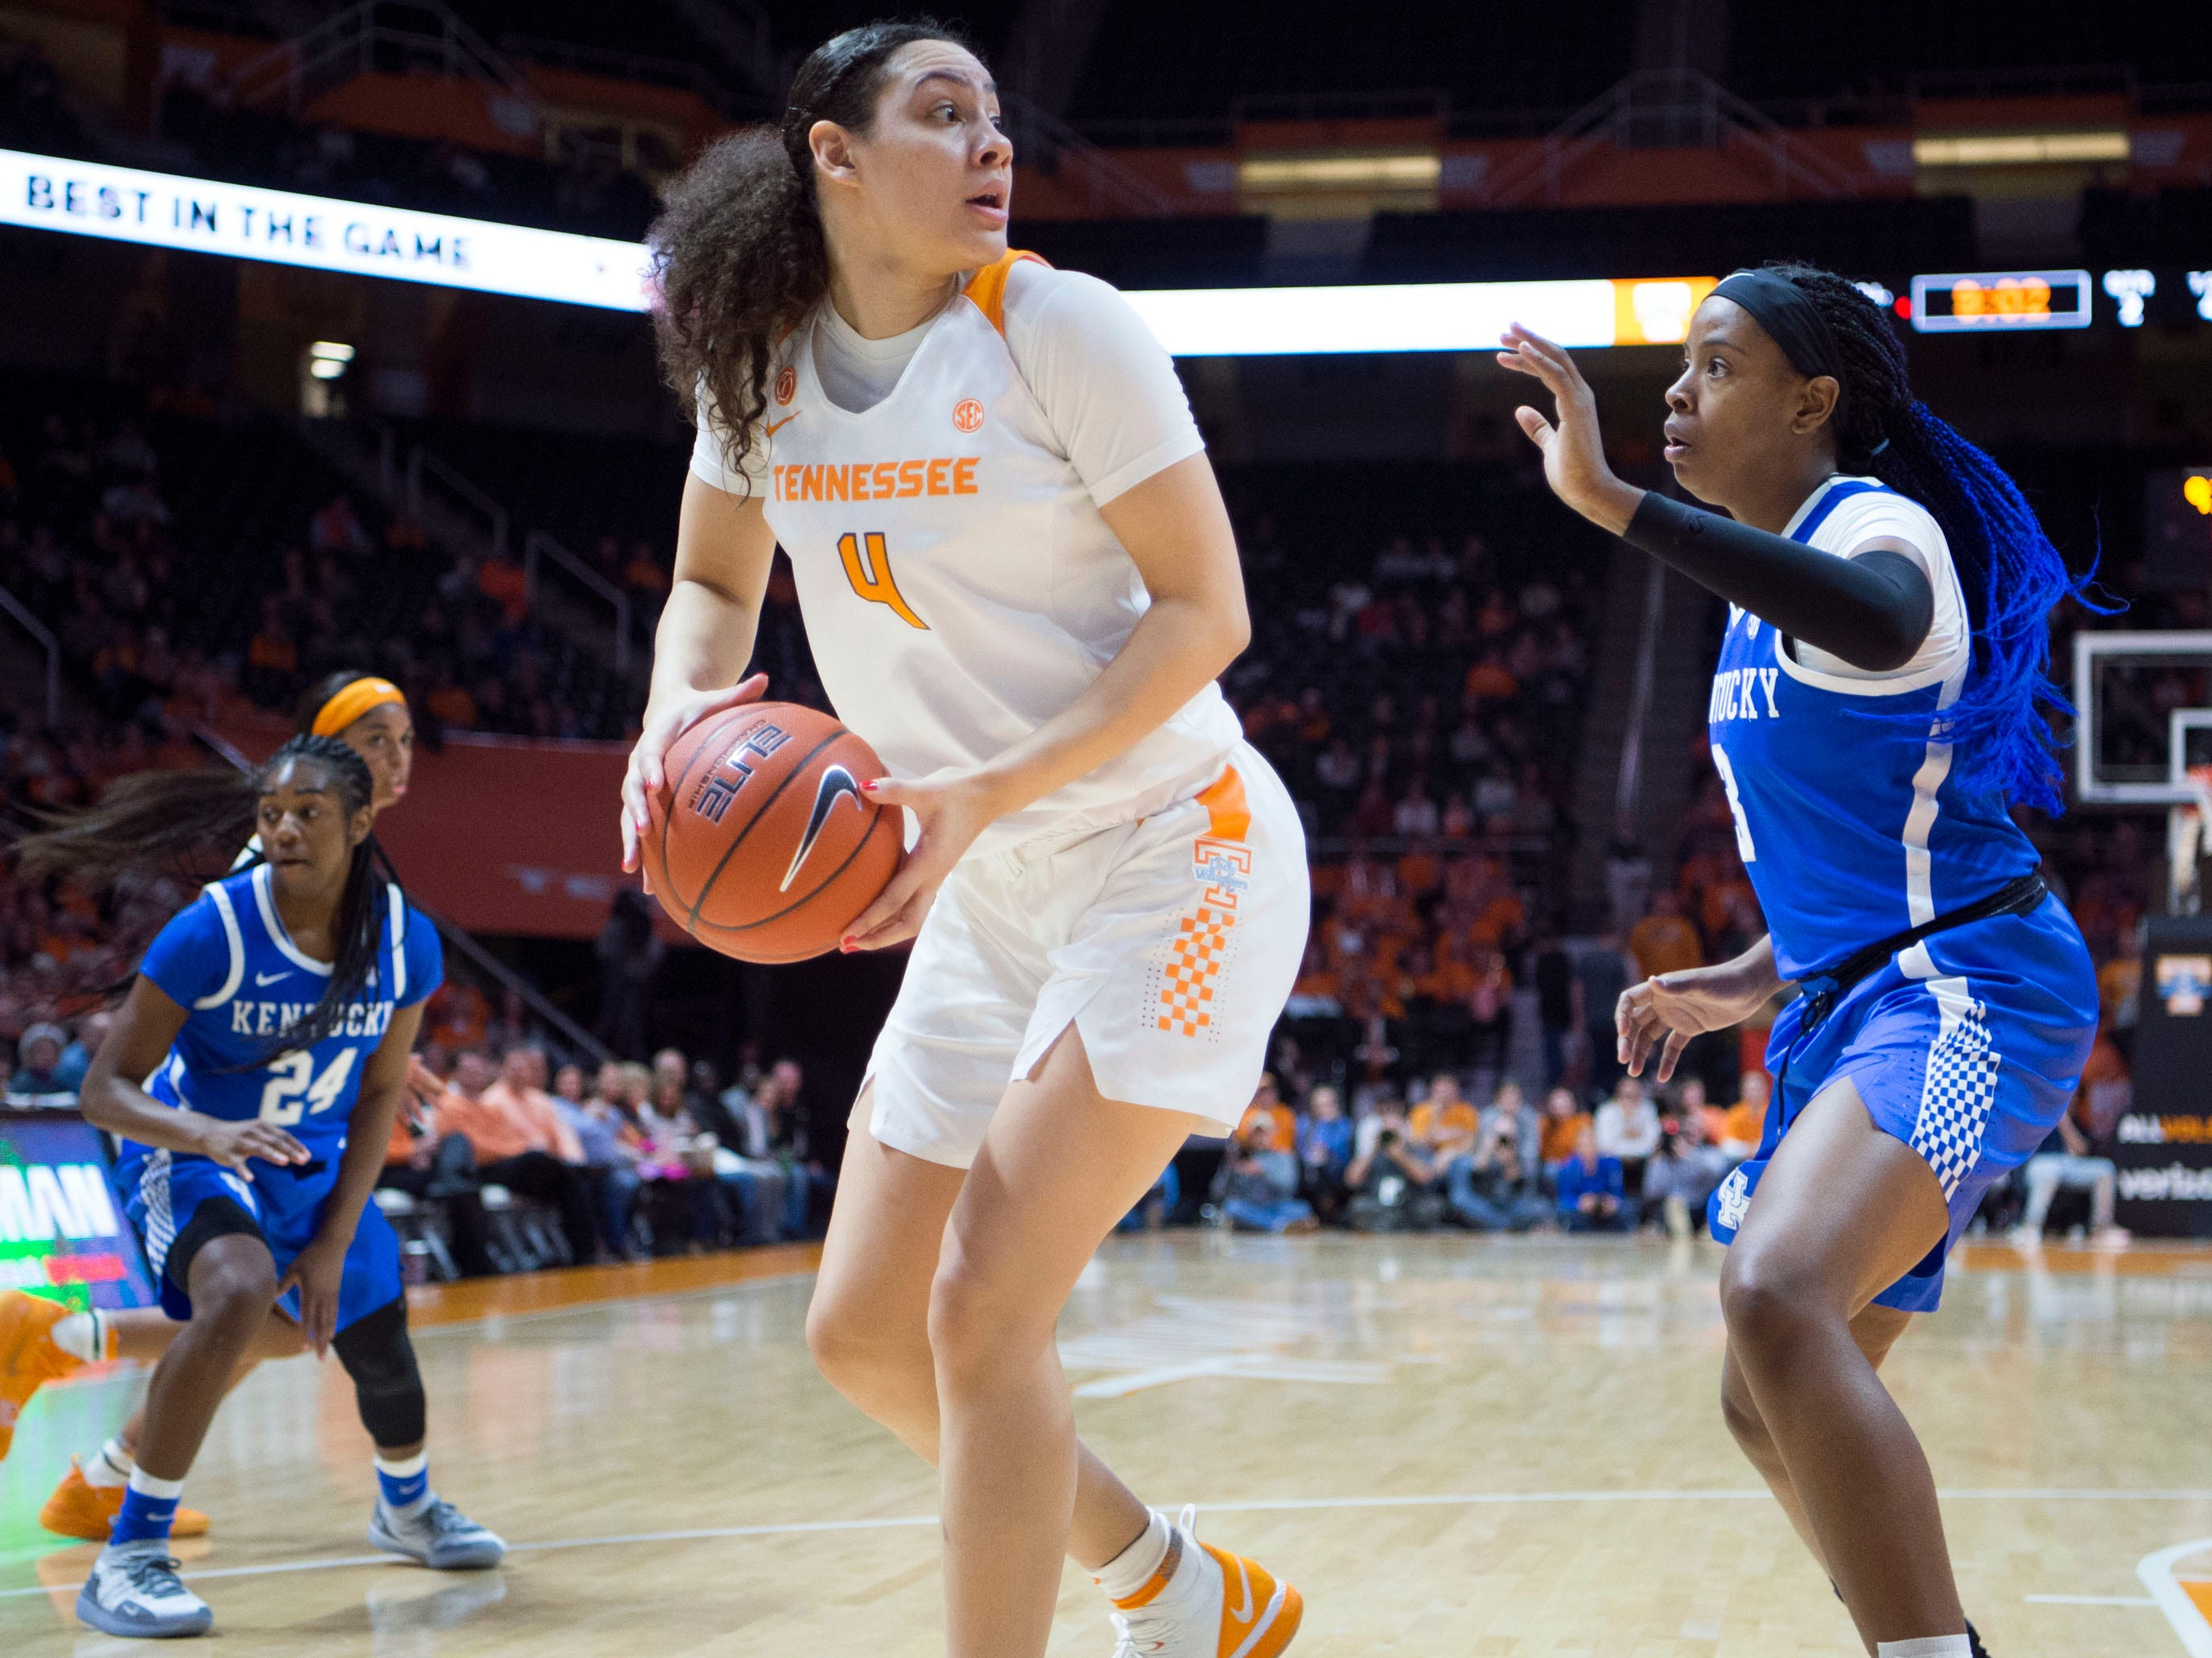 Tennessee's Mimi Collins (4) is guarded by Kentucky's KeKe McKinney (3) on Thursday, January 10, 2019.